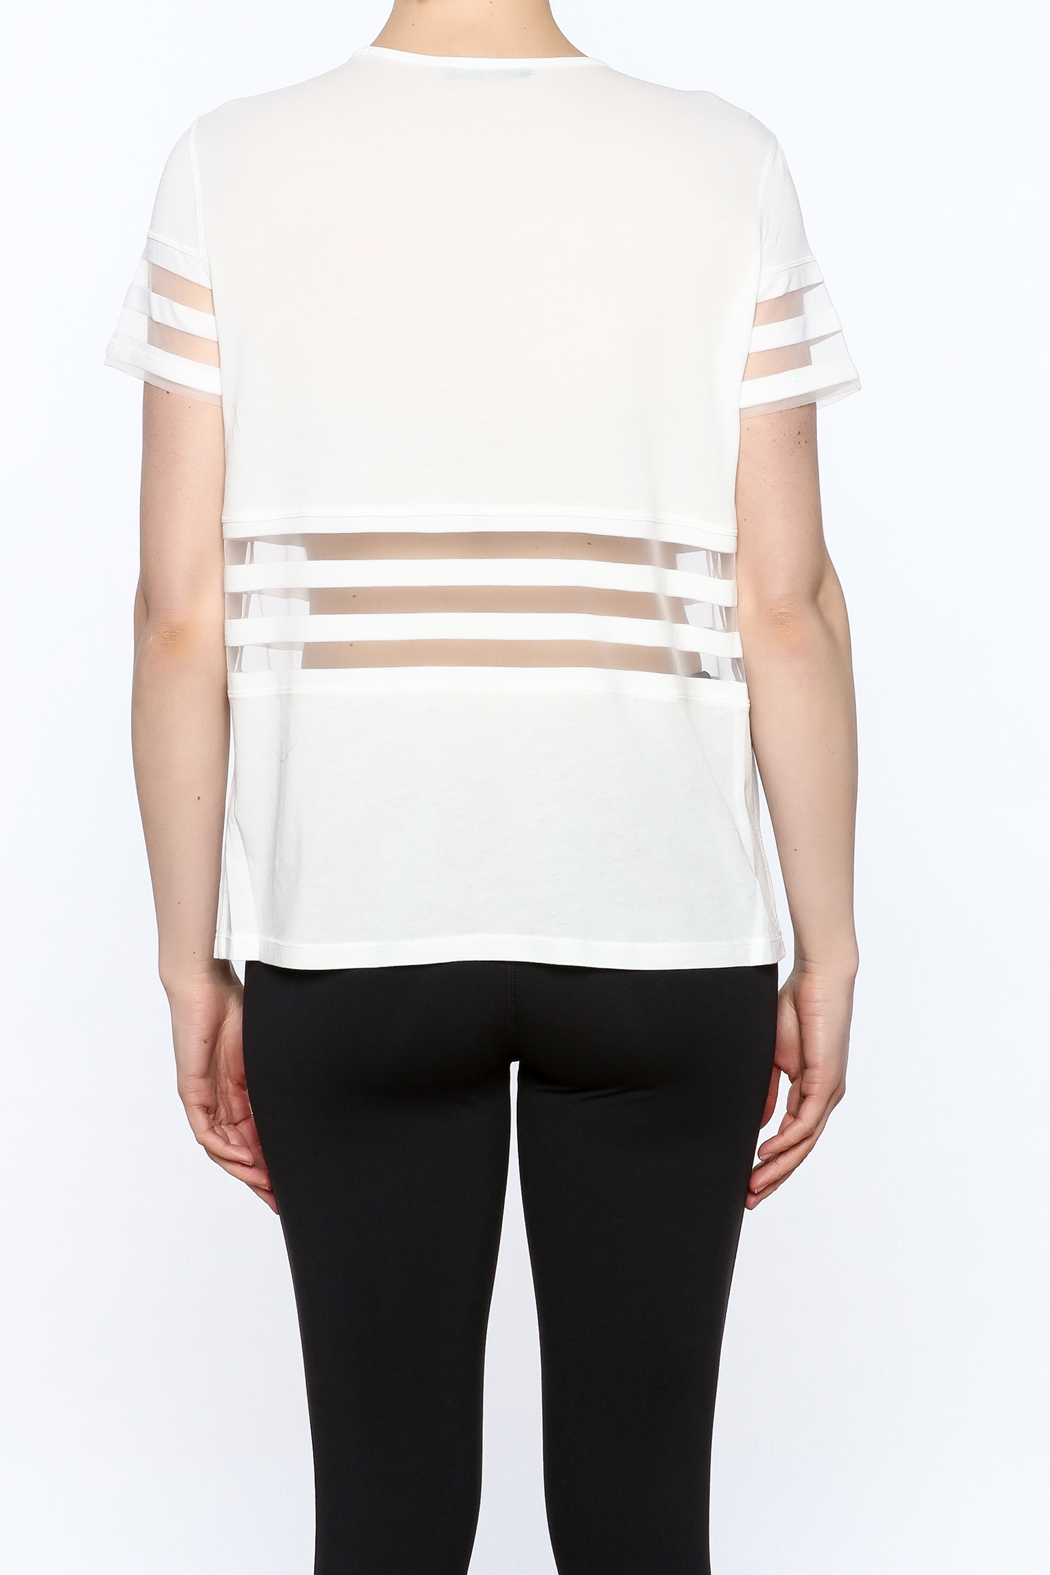 Titika Active Couture Bandit T-Shirt - Back Cropped Image